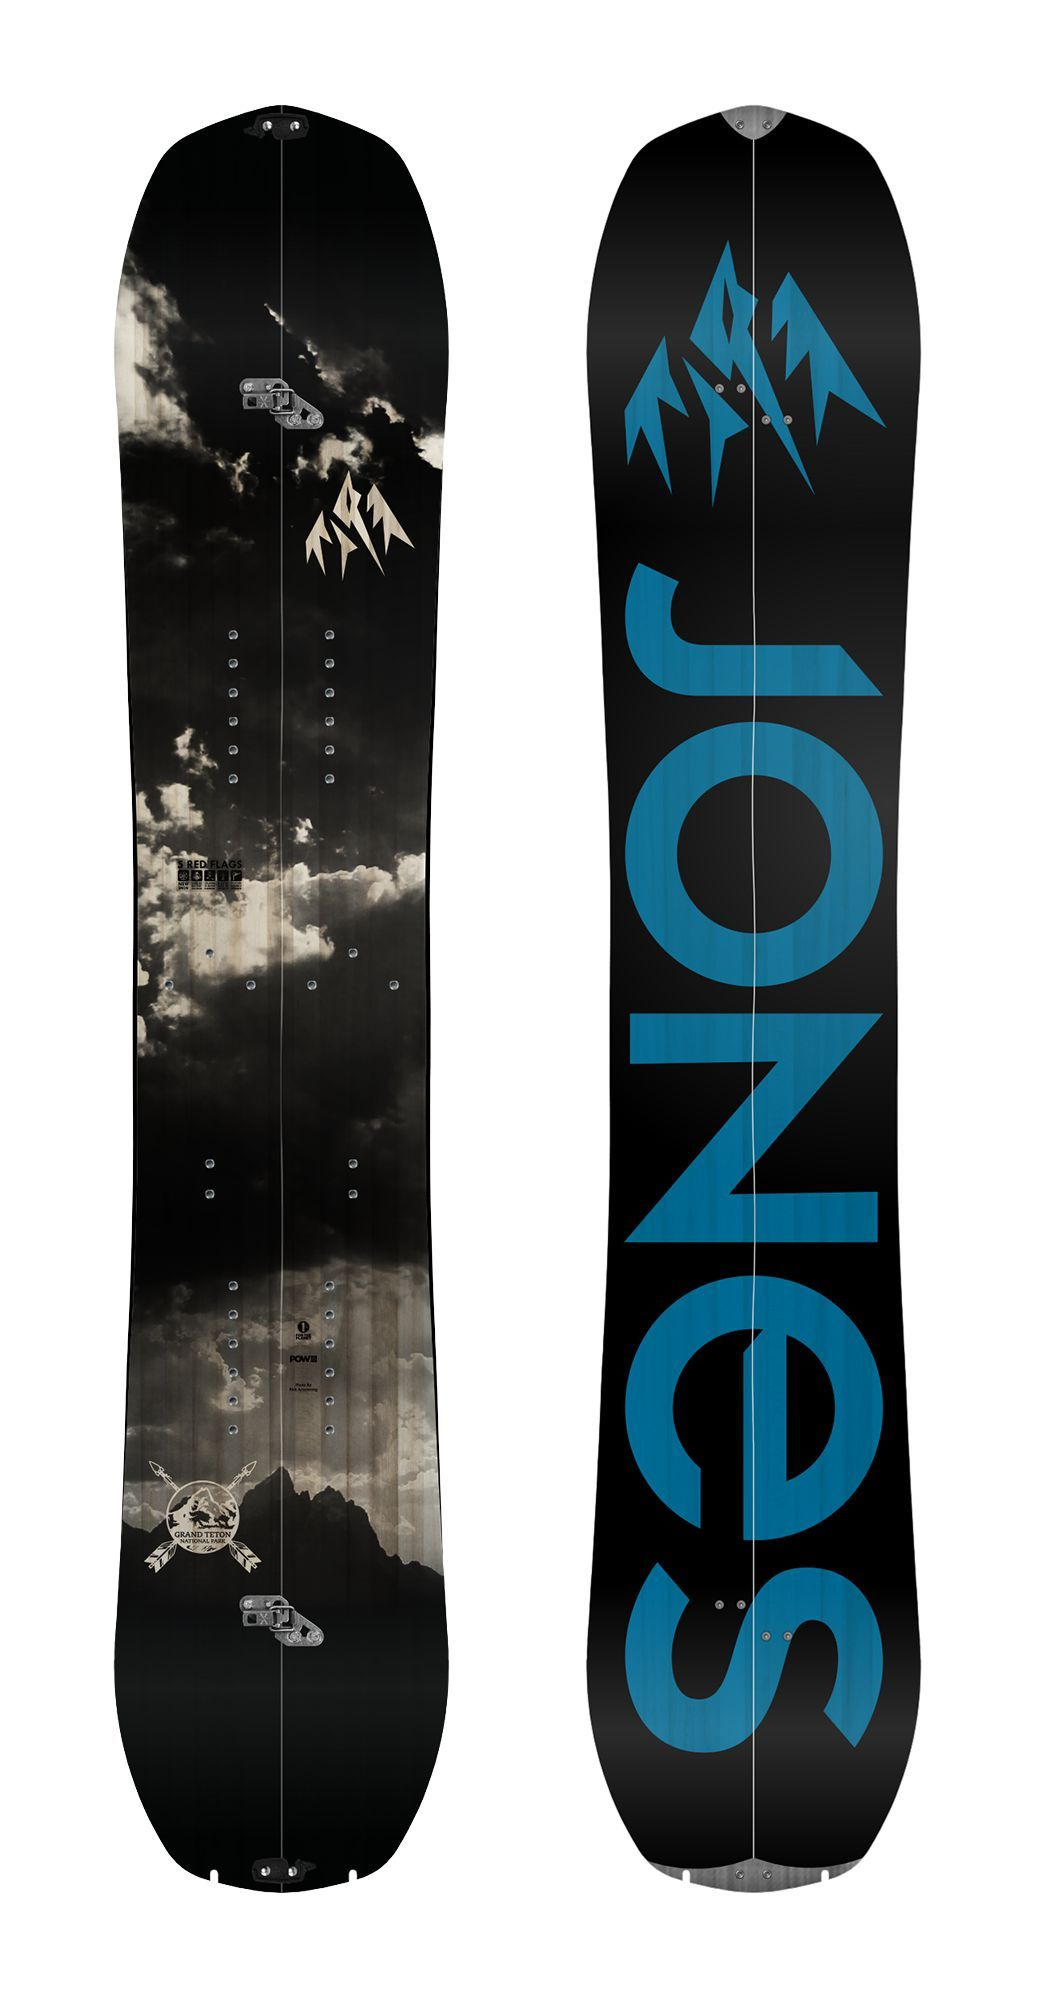 b888634a607 Explore Snowboarding and more! JONES EXPLORER SPLIT. The All-Terrain